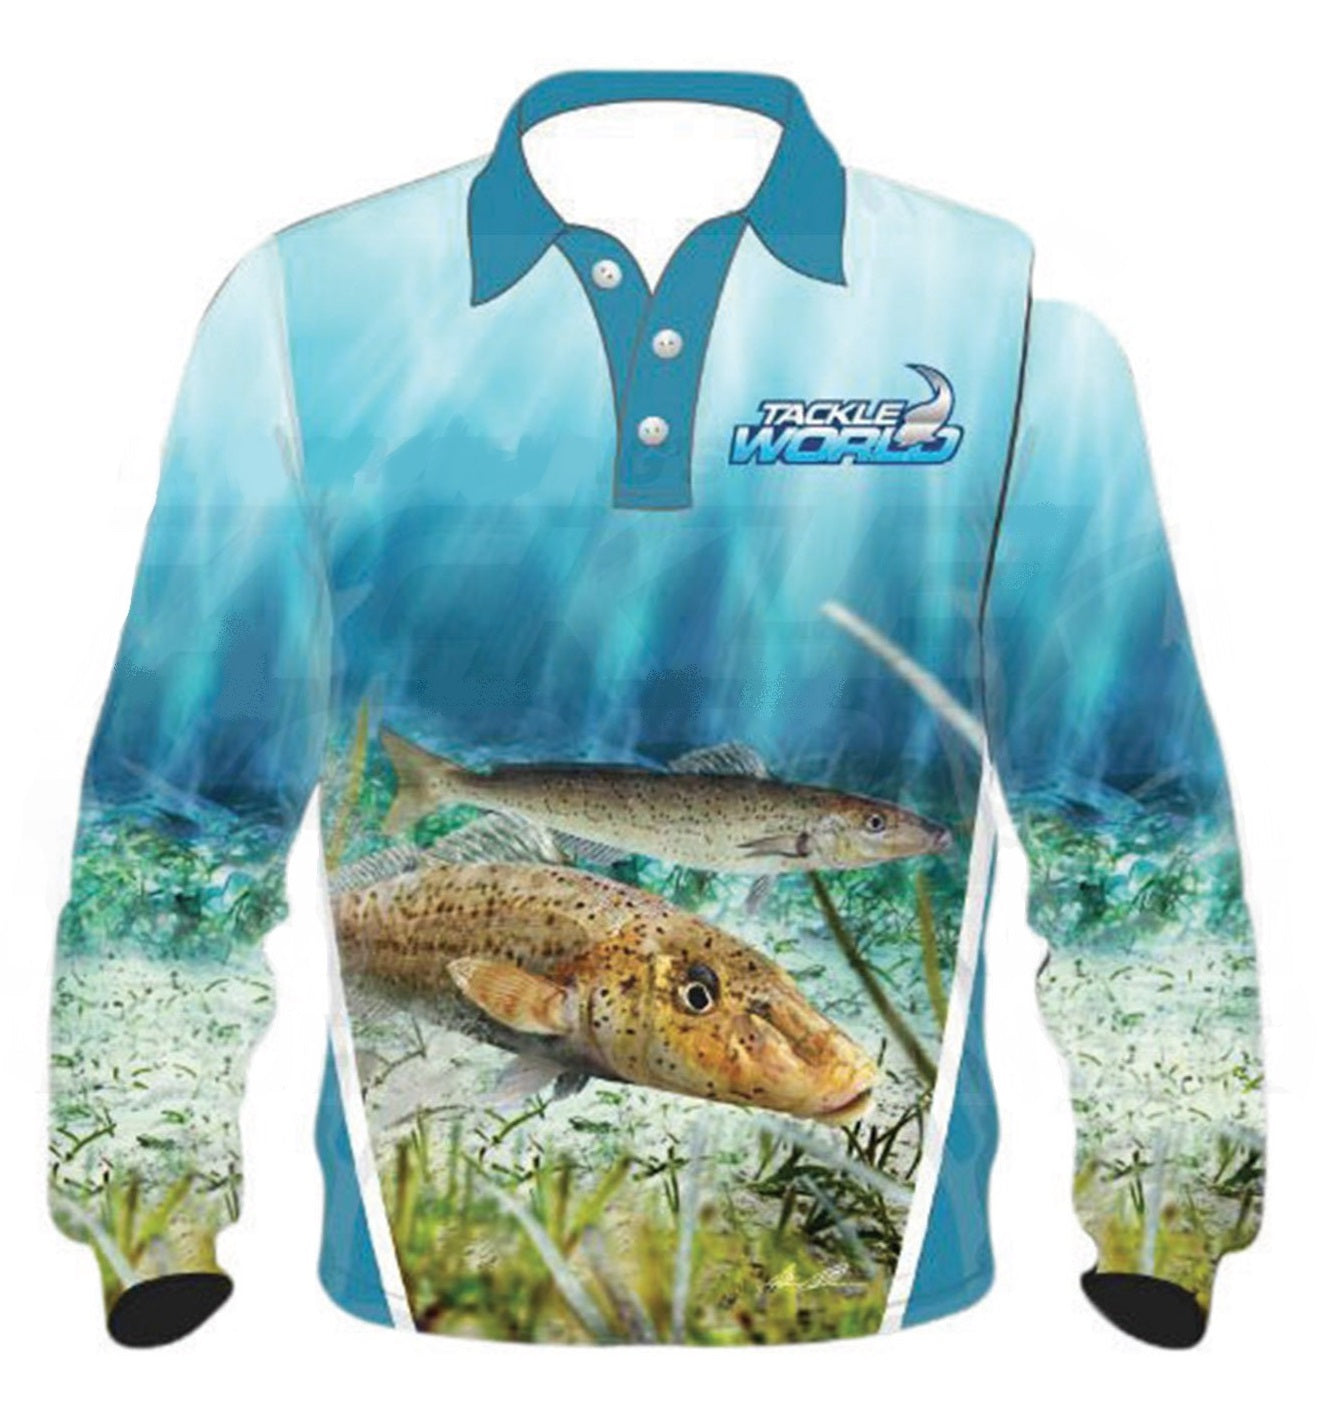 Tackle World Whiting Ladies Long Sleeve Fishing Shirt Jersey